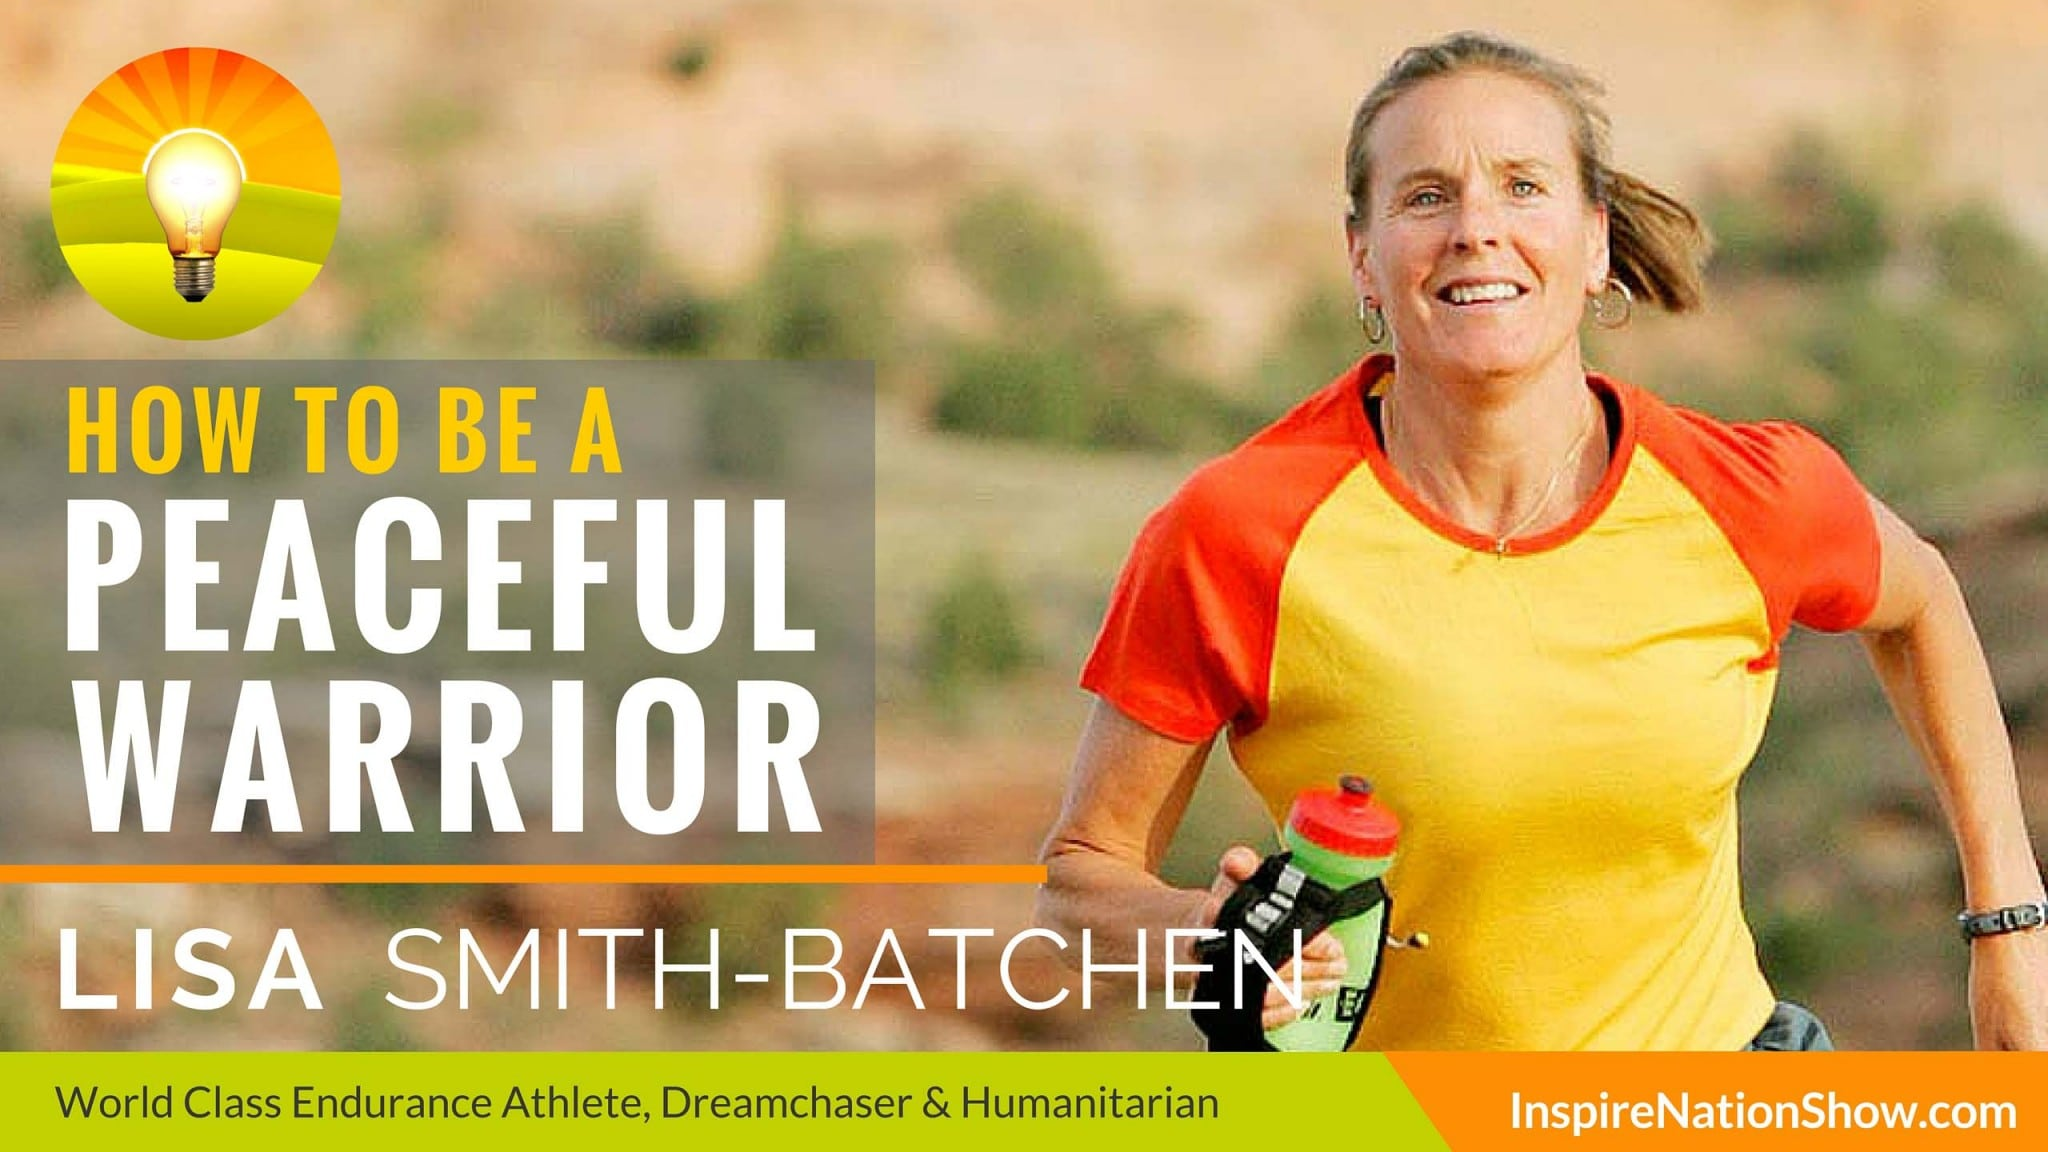 Lisa-Smith-Batchen-Inspire-Nation-show-podcast-badwater-ultramarathon-marathon-des-sables-sahara-endurance-50-miles-50-states-dreamchaser-foundation